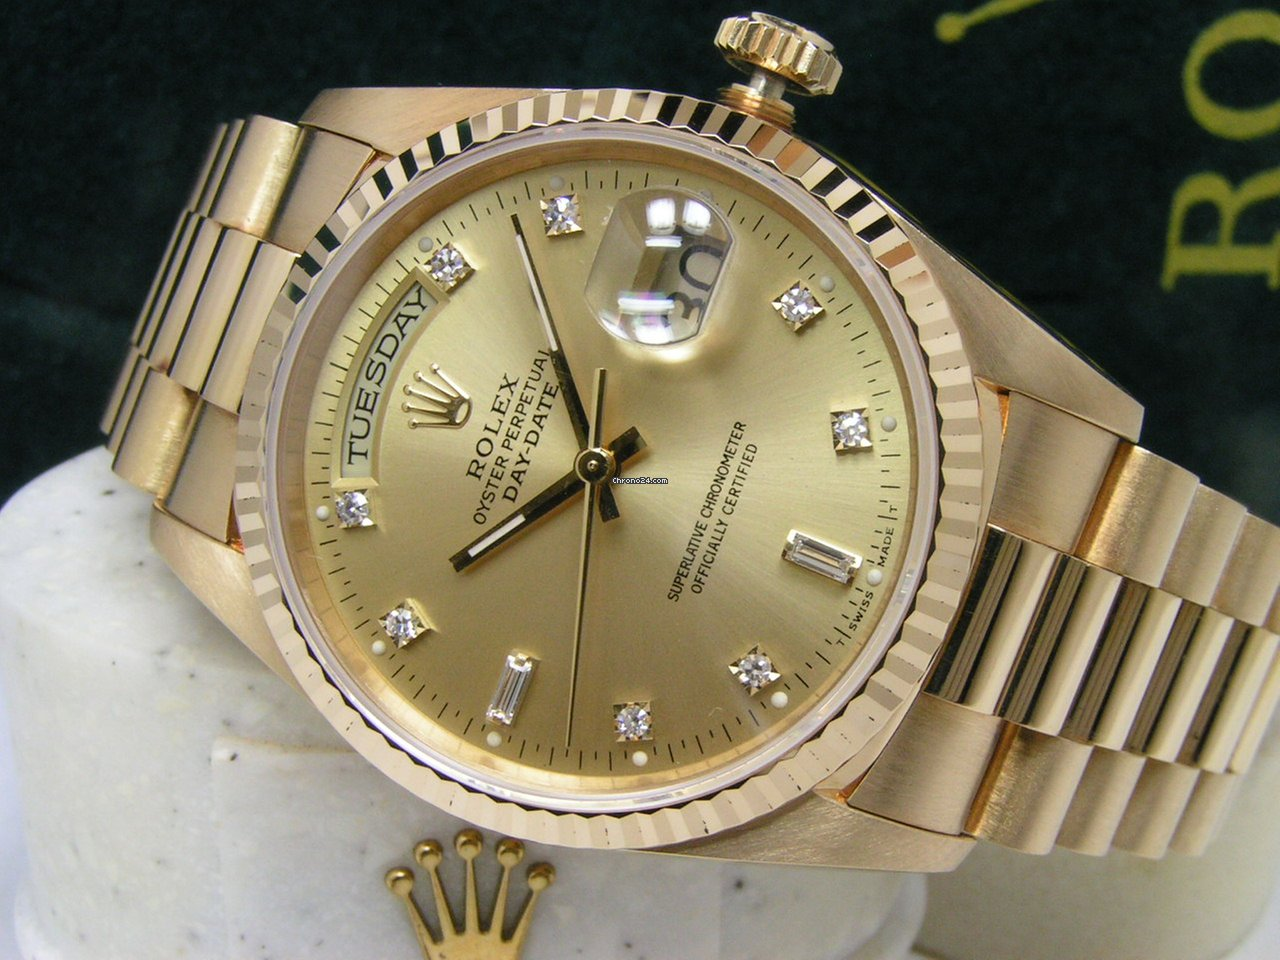 2bff186427d Buy affordable diamond watches on Chrono24